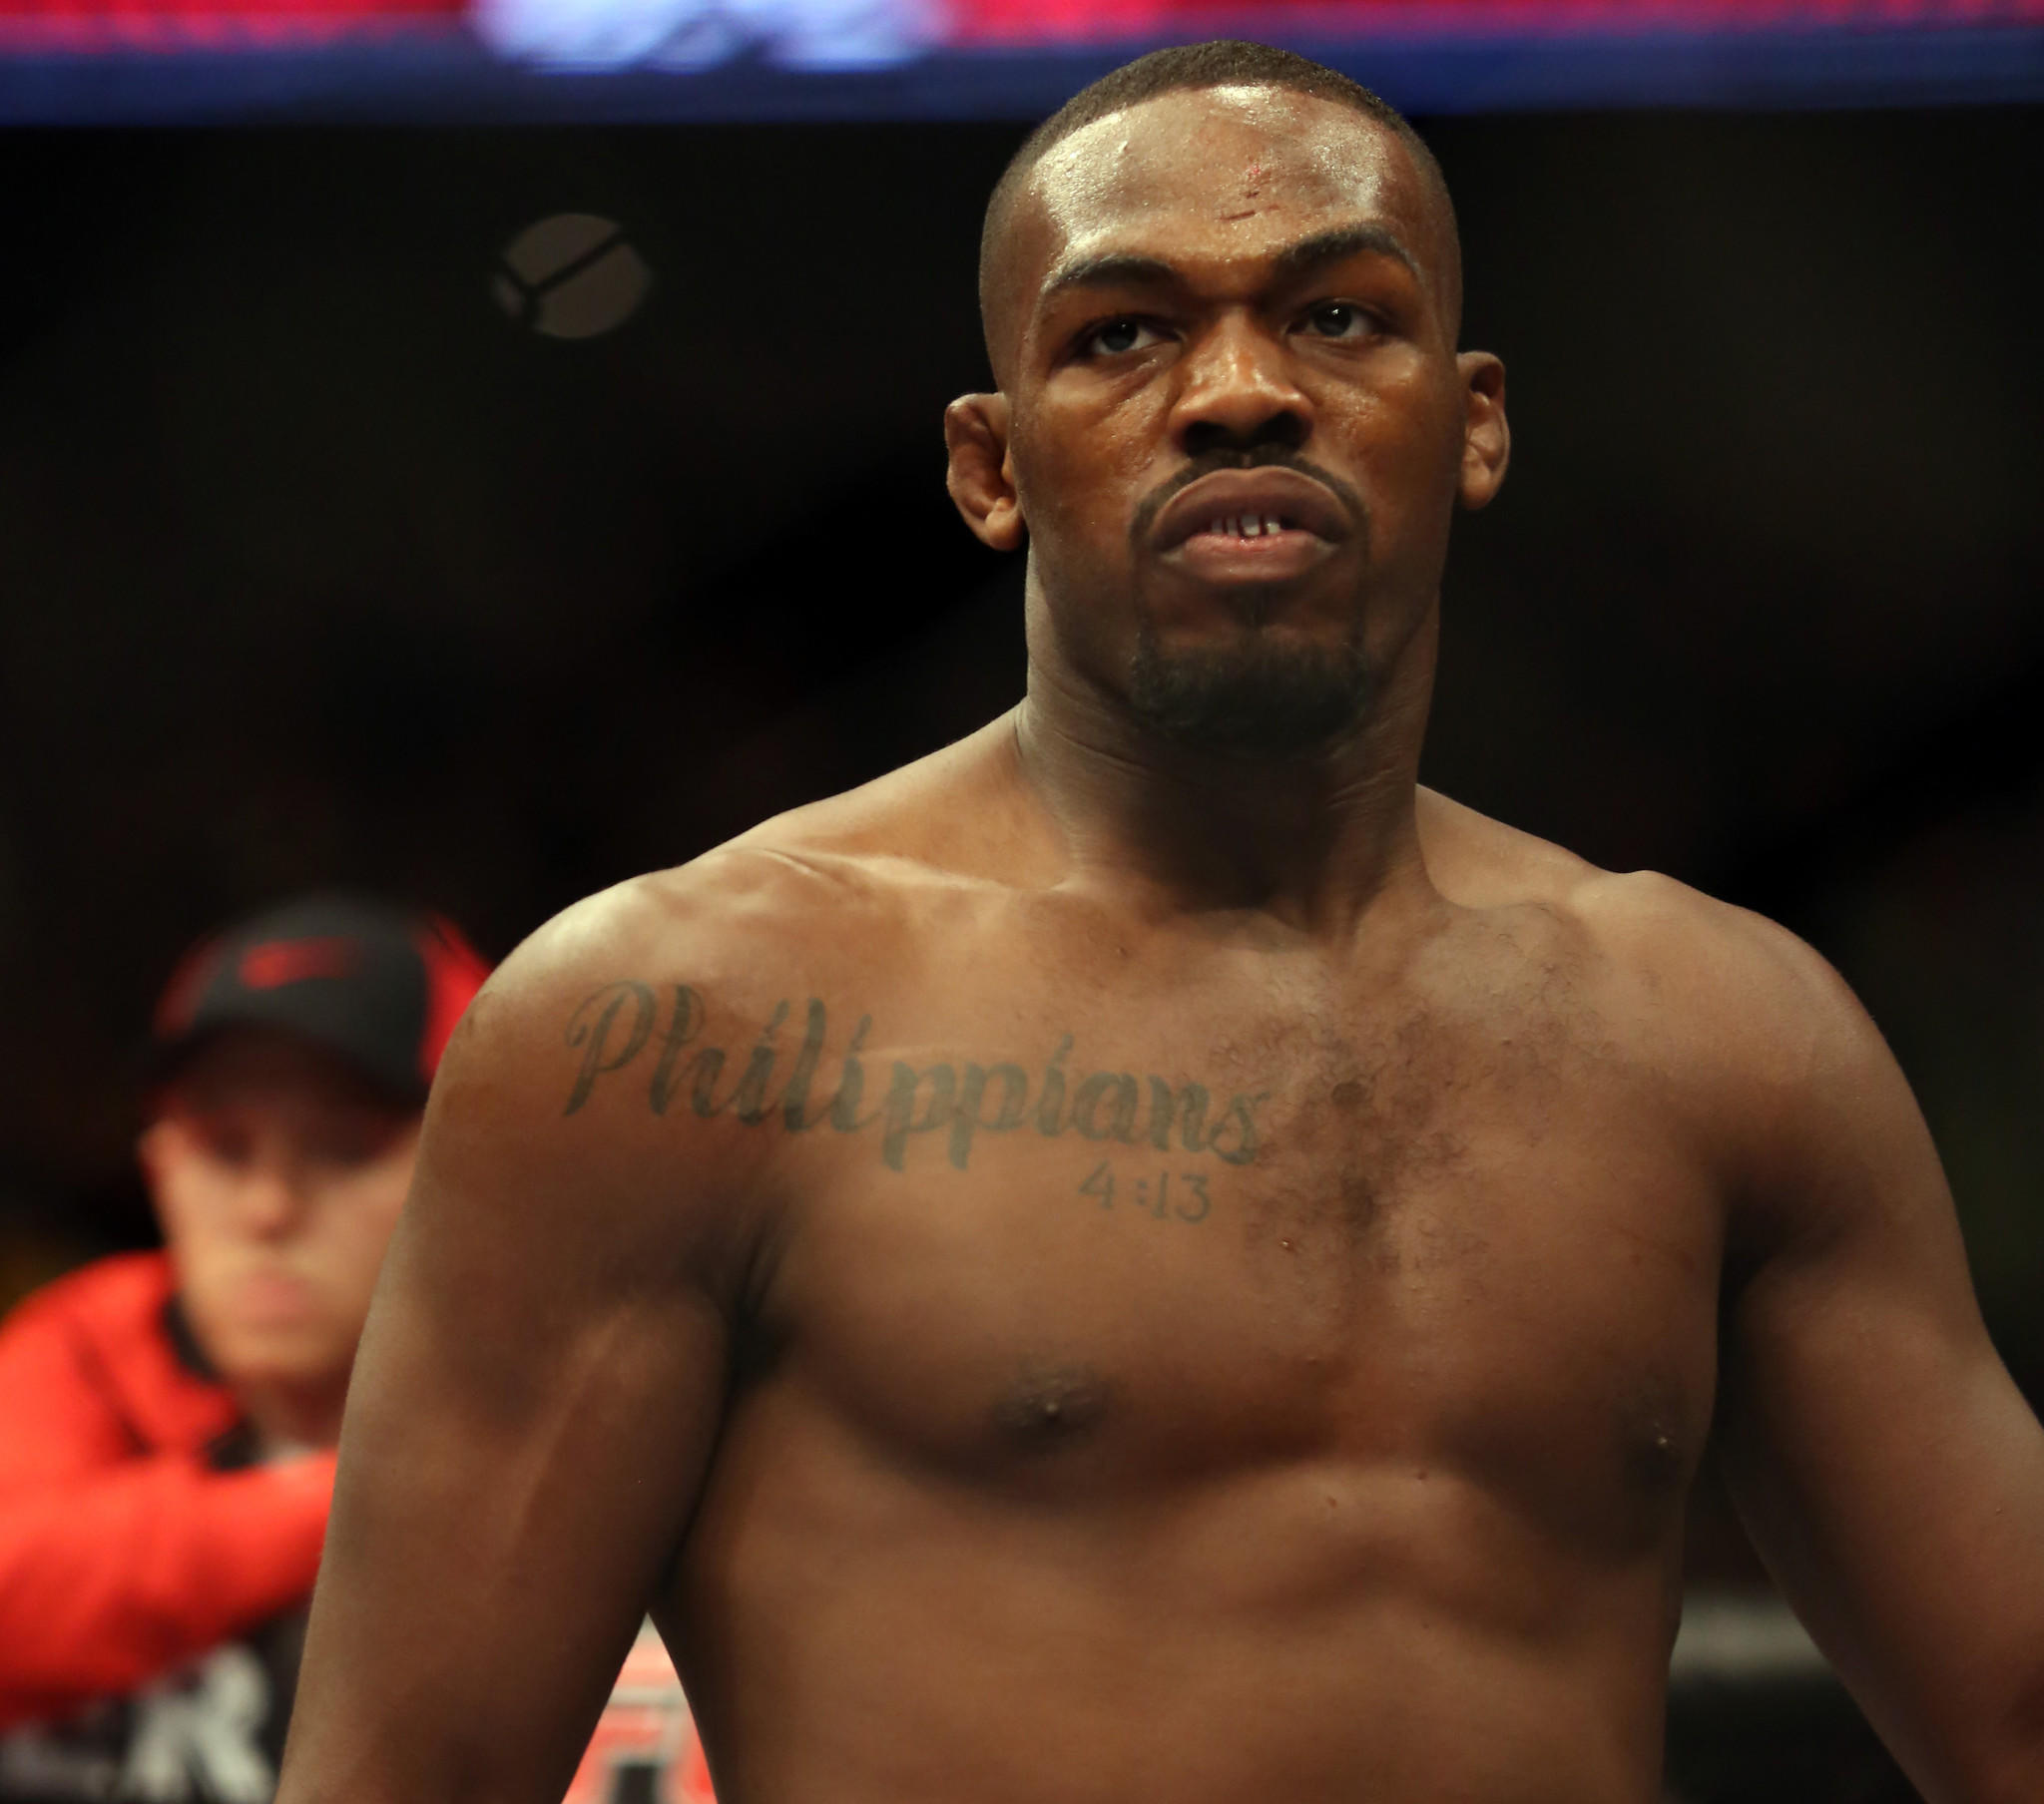 Jon Jones is seen in the ring before his UFC bout in April 2013. Jones is hoping to quiet his critics with a strong performance Saturday against Glover Teixeira.